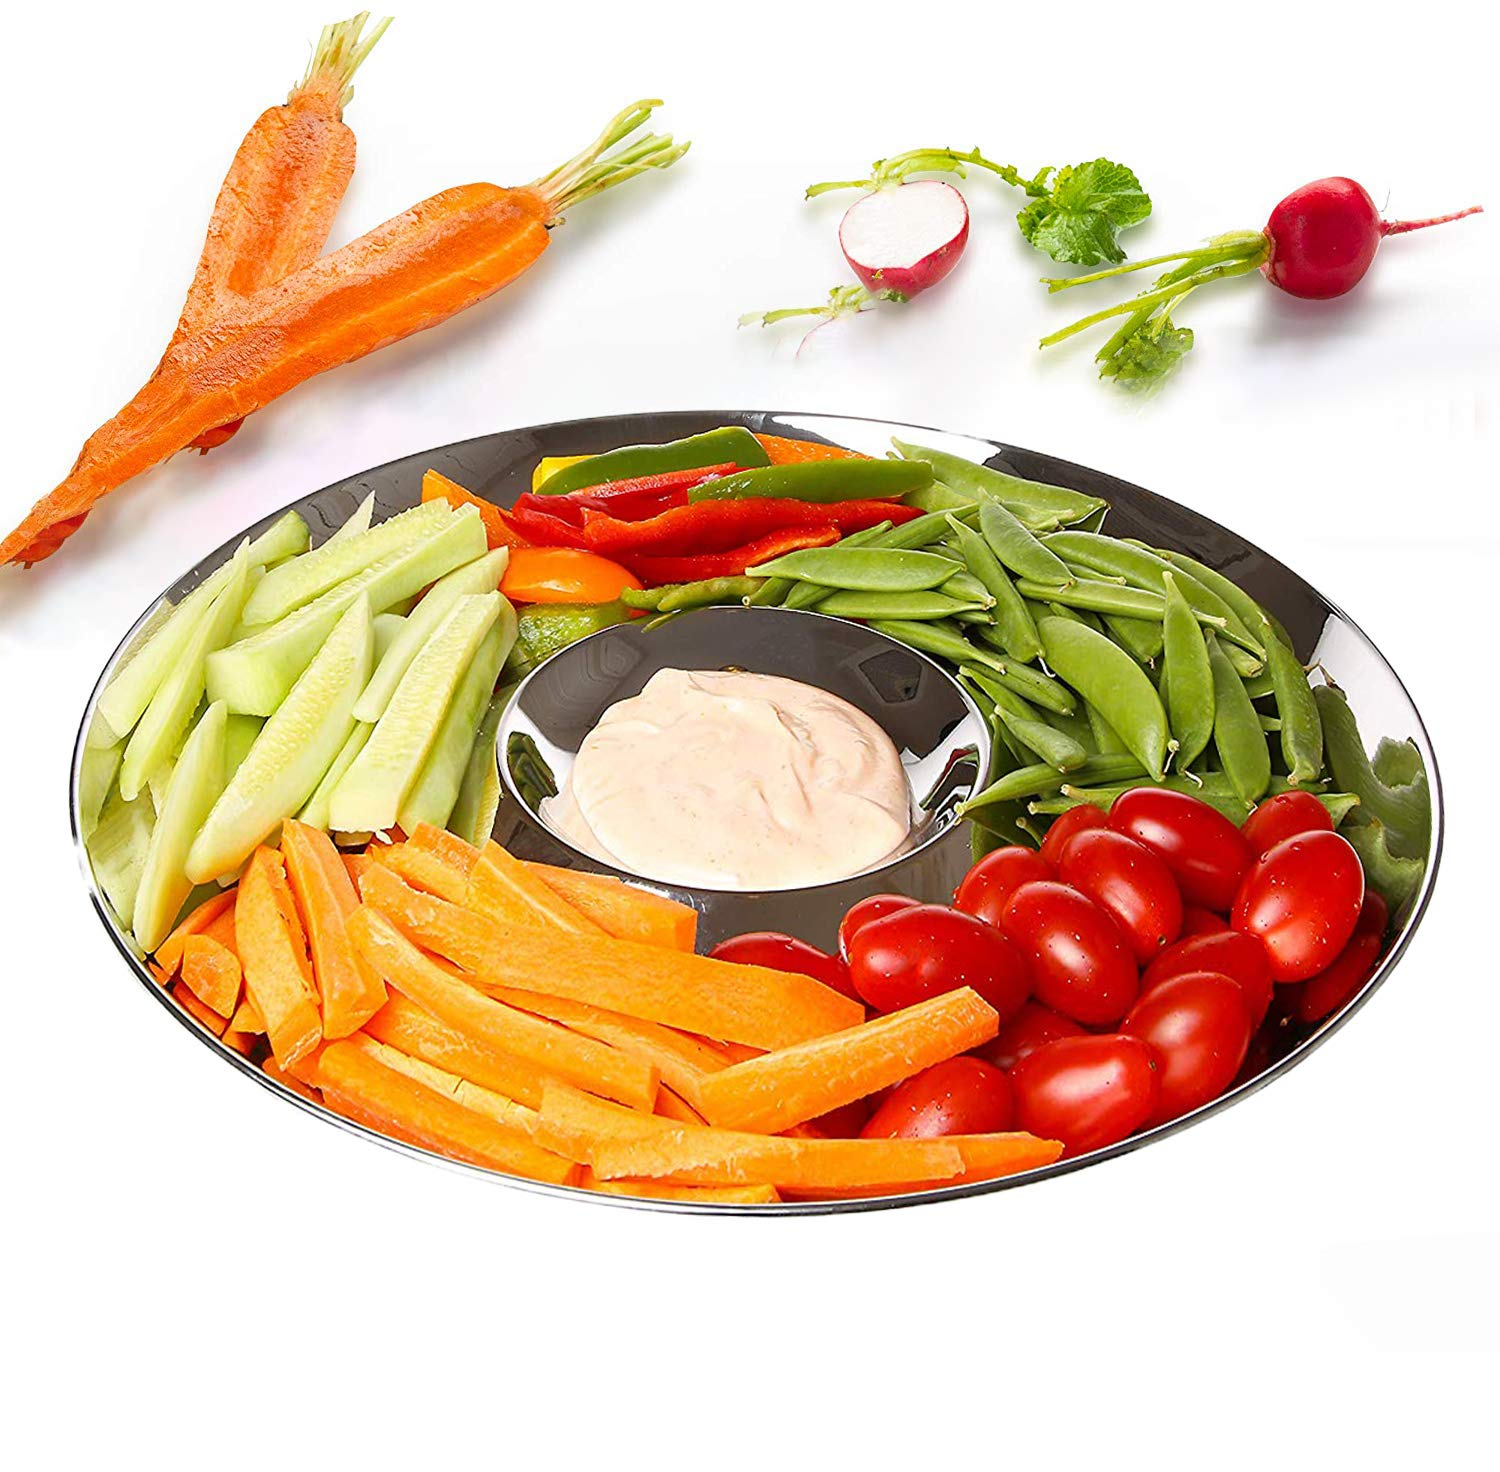 Chip and Dip Serving Bowl, Elegant Serving Dish - Great for Chips, Dips, Appetizer, Fruit Bowl, Salad and Snack - Stainless Steel Chips and Dip Plate